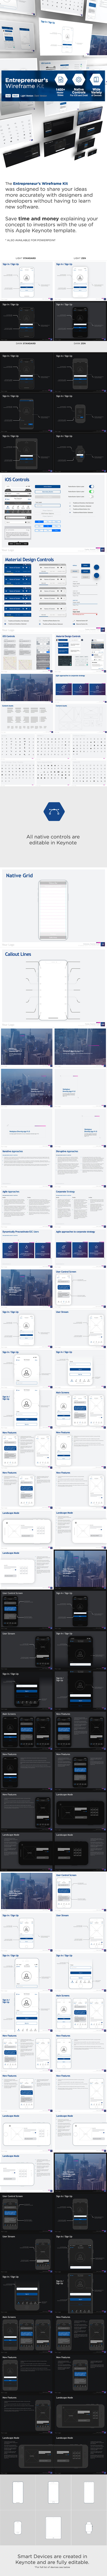 The Entrepreneur's Wireframe Kit - Keynote Version - Business Keynote Templates